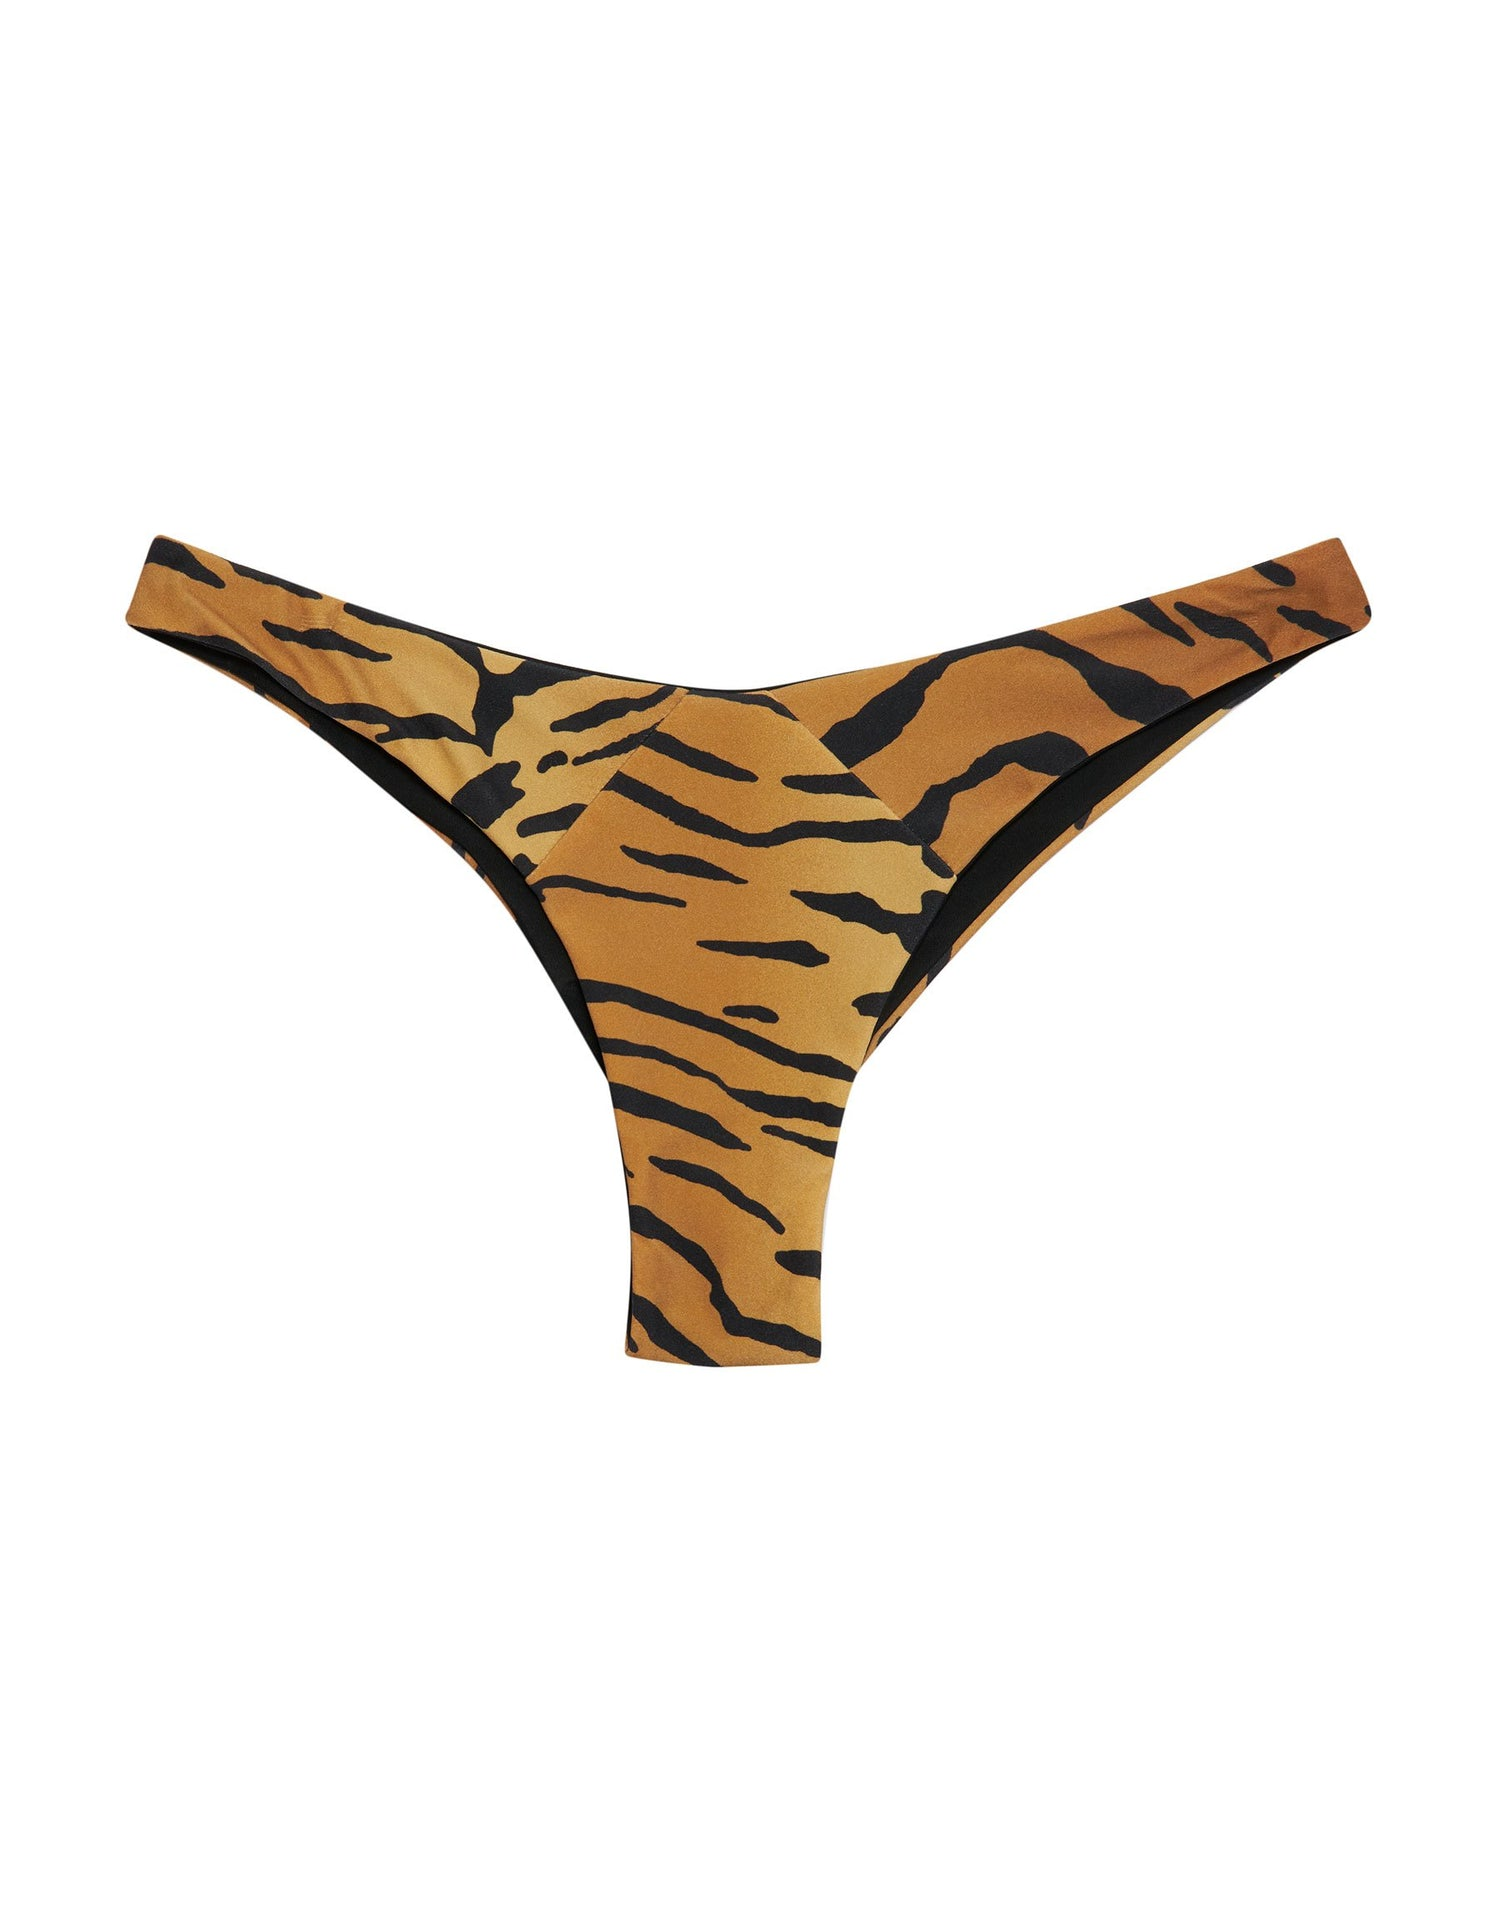 Sydney Brazilian Bikini Bottom in Tiger - product view